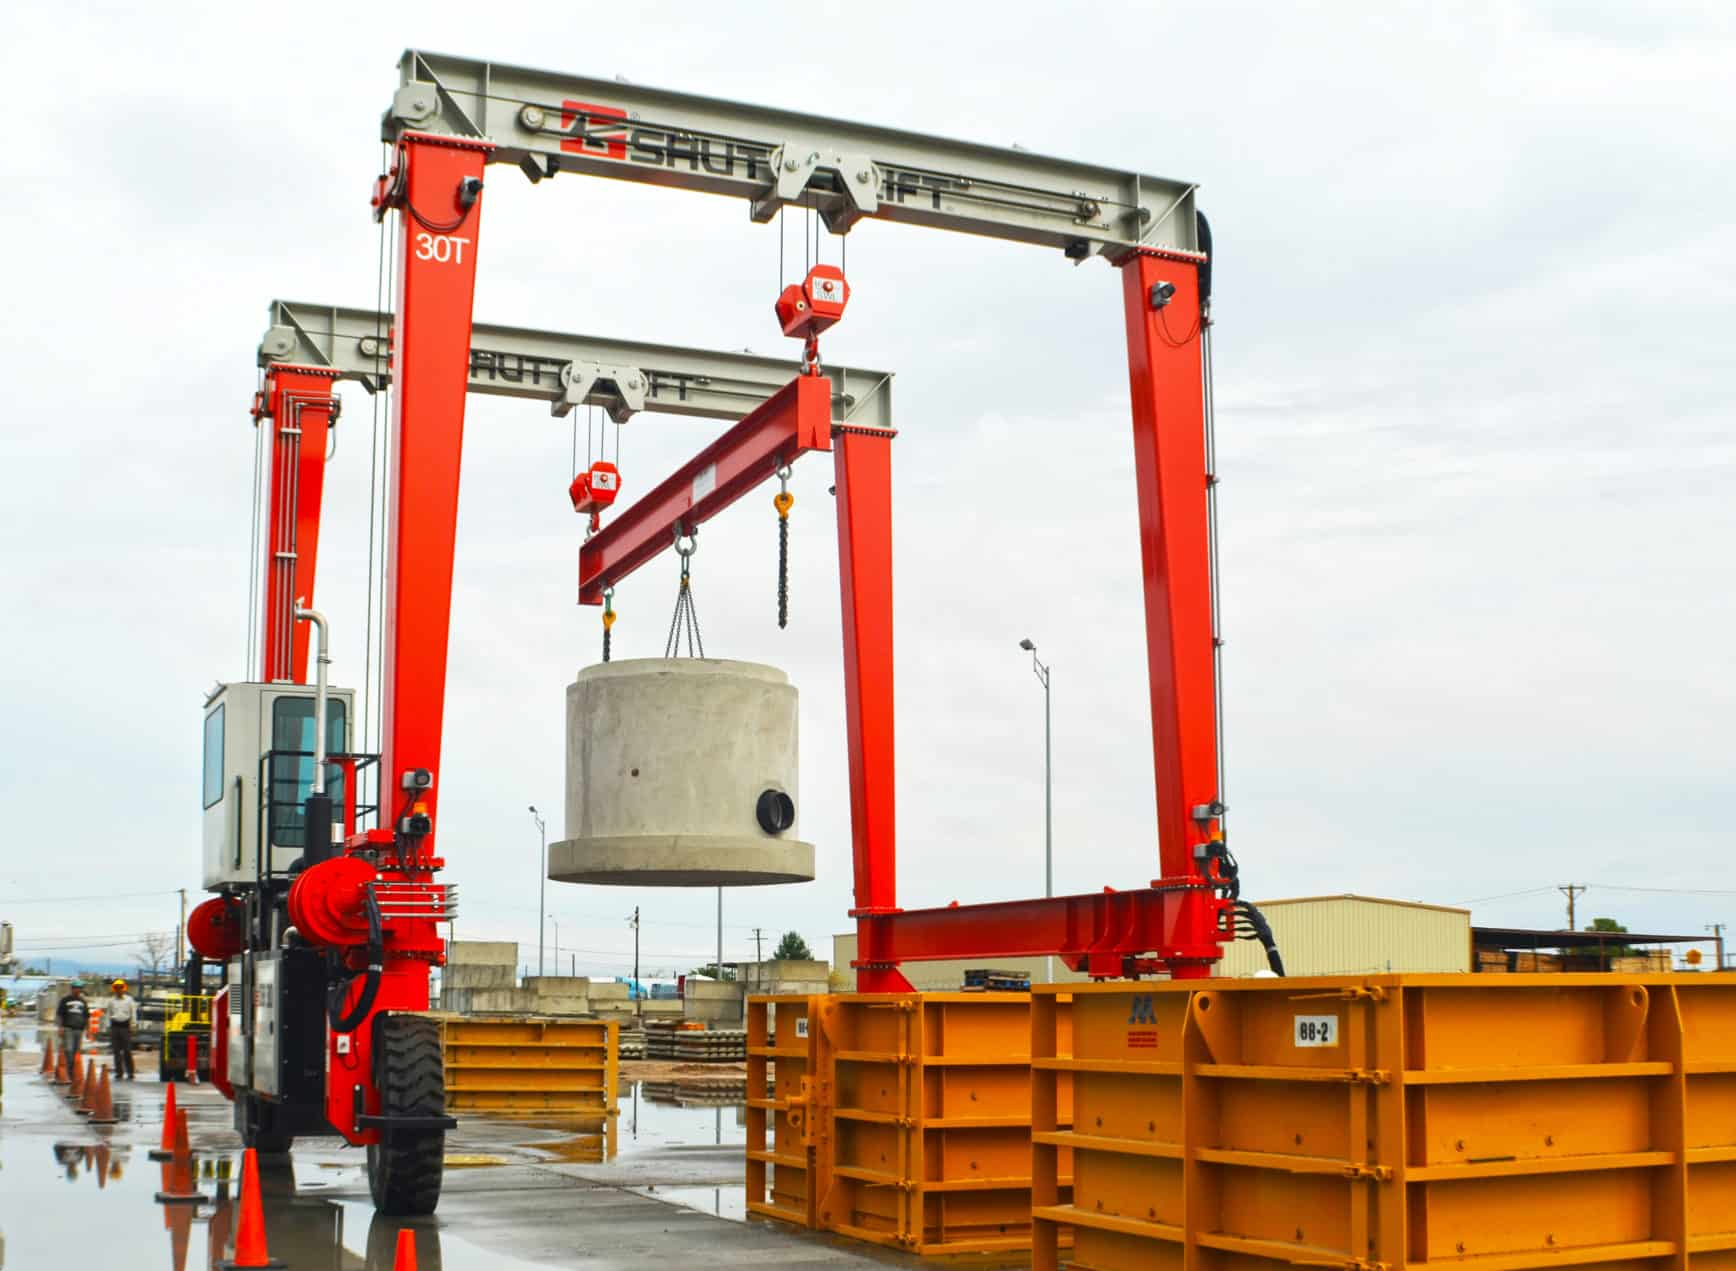 Shuttlelift DB Series RTG crane working in precast concrete application